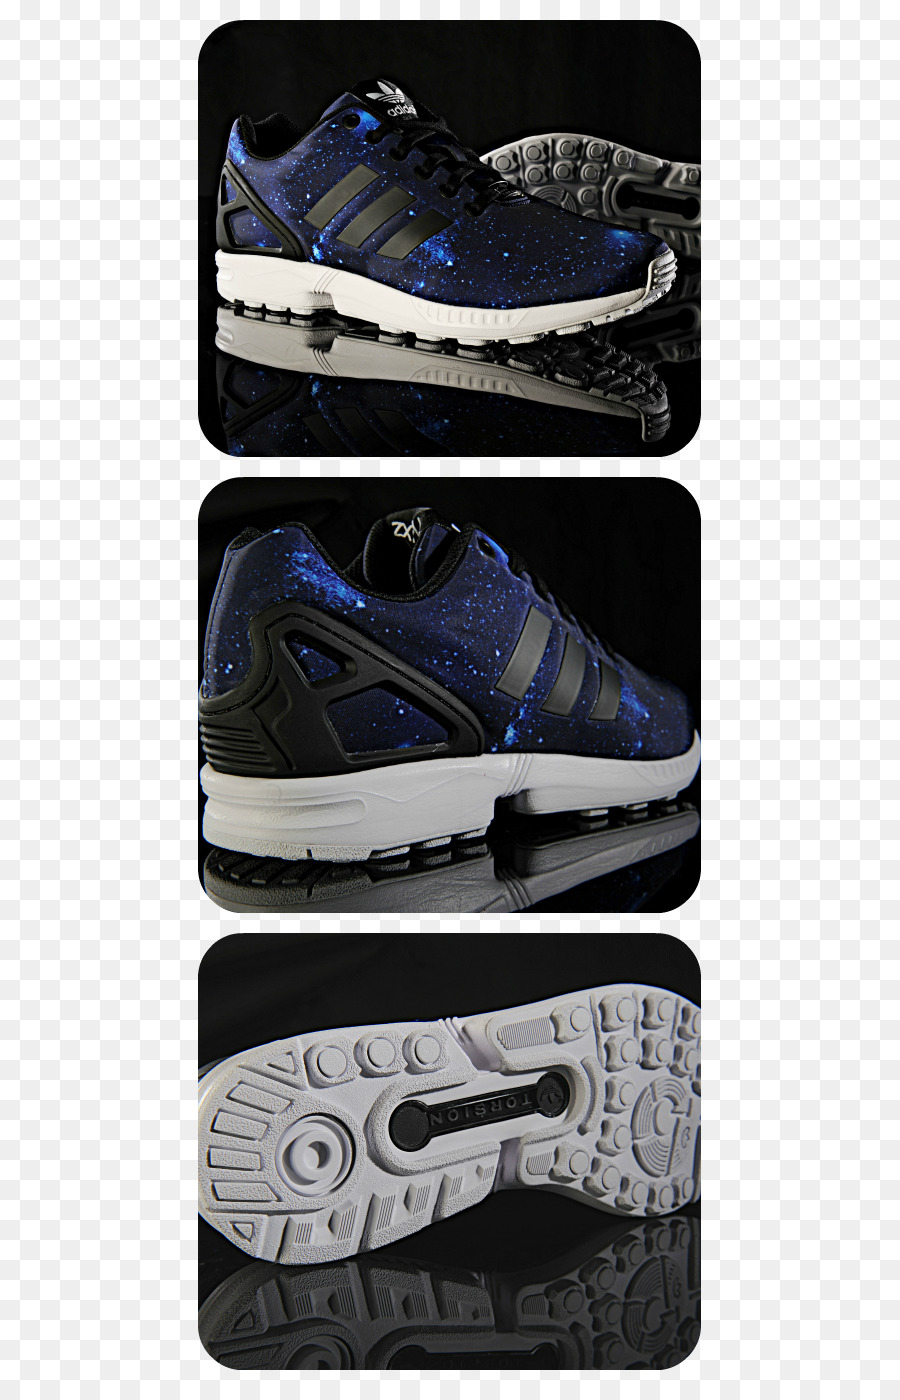 053460ca0a56a Sports shoes Kids adidas Originals ZX Flux Mens adidas Originals ZX Flux -  flux black adidas shoes for women png download - 543 1390 - Free  Transparent ...